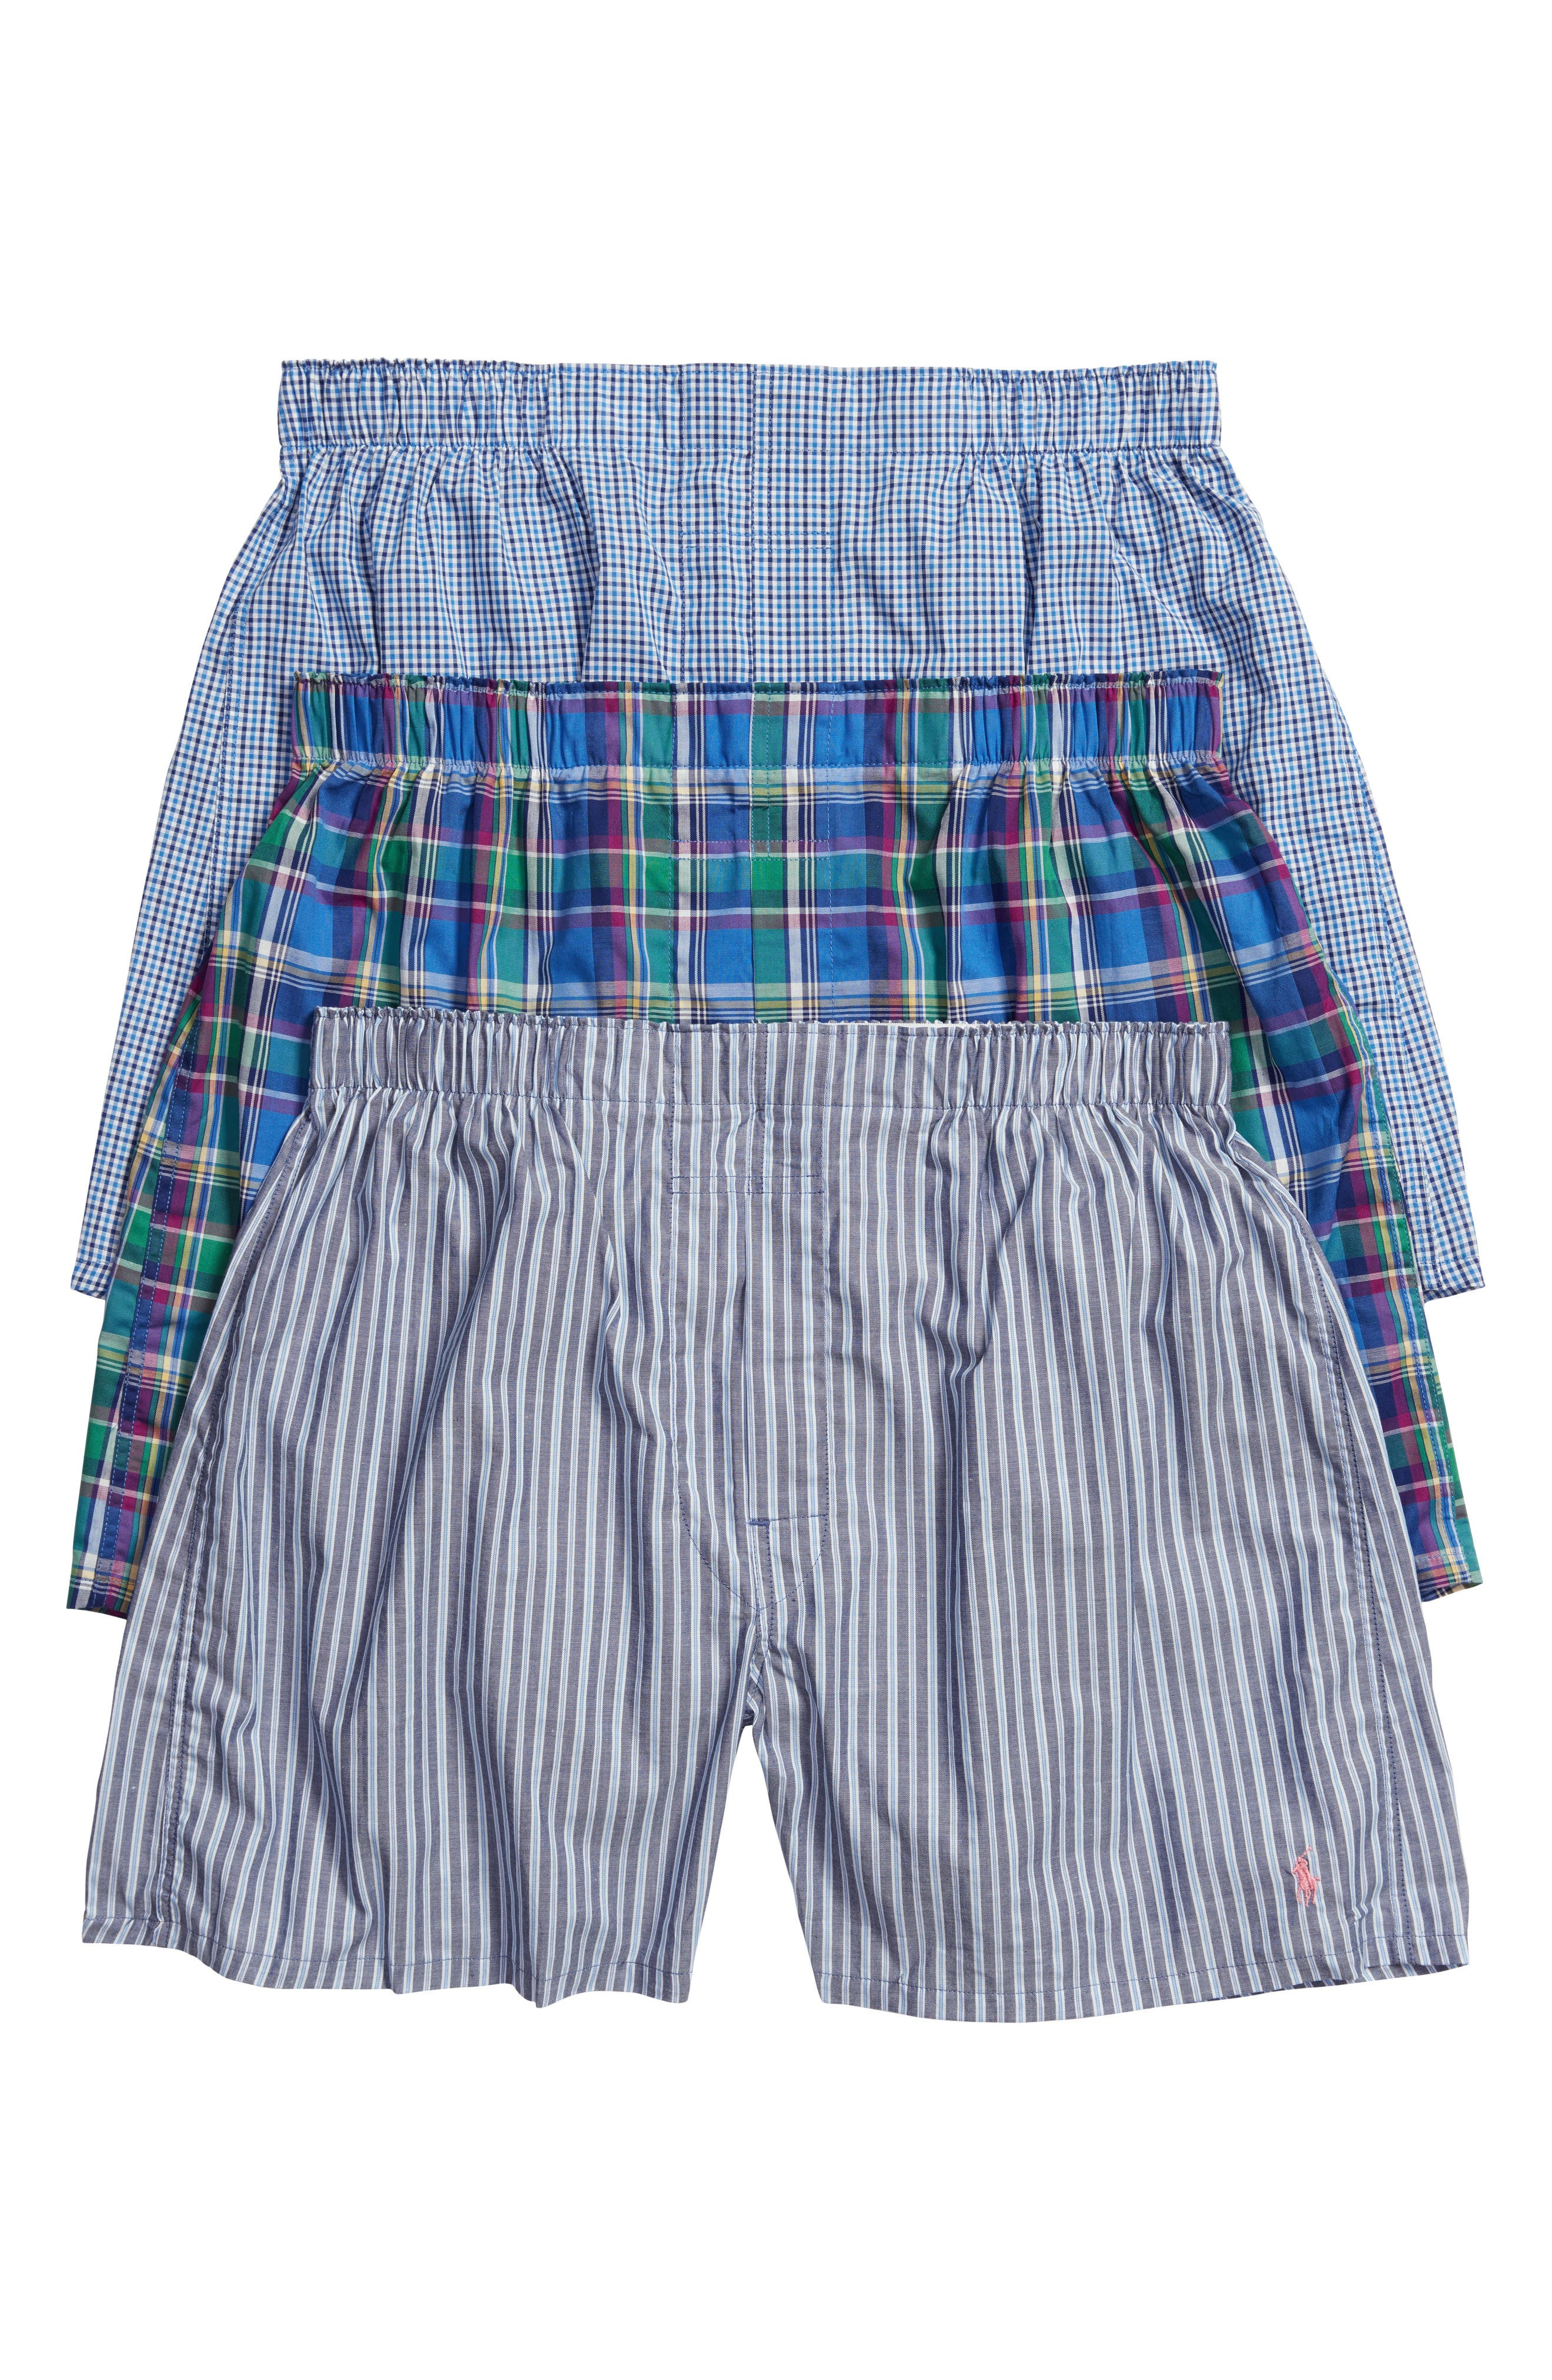 Alternate Image 1 Selected - Polo Ralph Lauren Assorted 3-Pack Woven Cotton Boxers